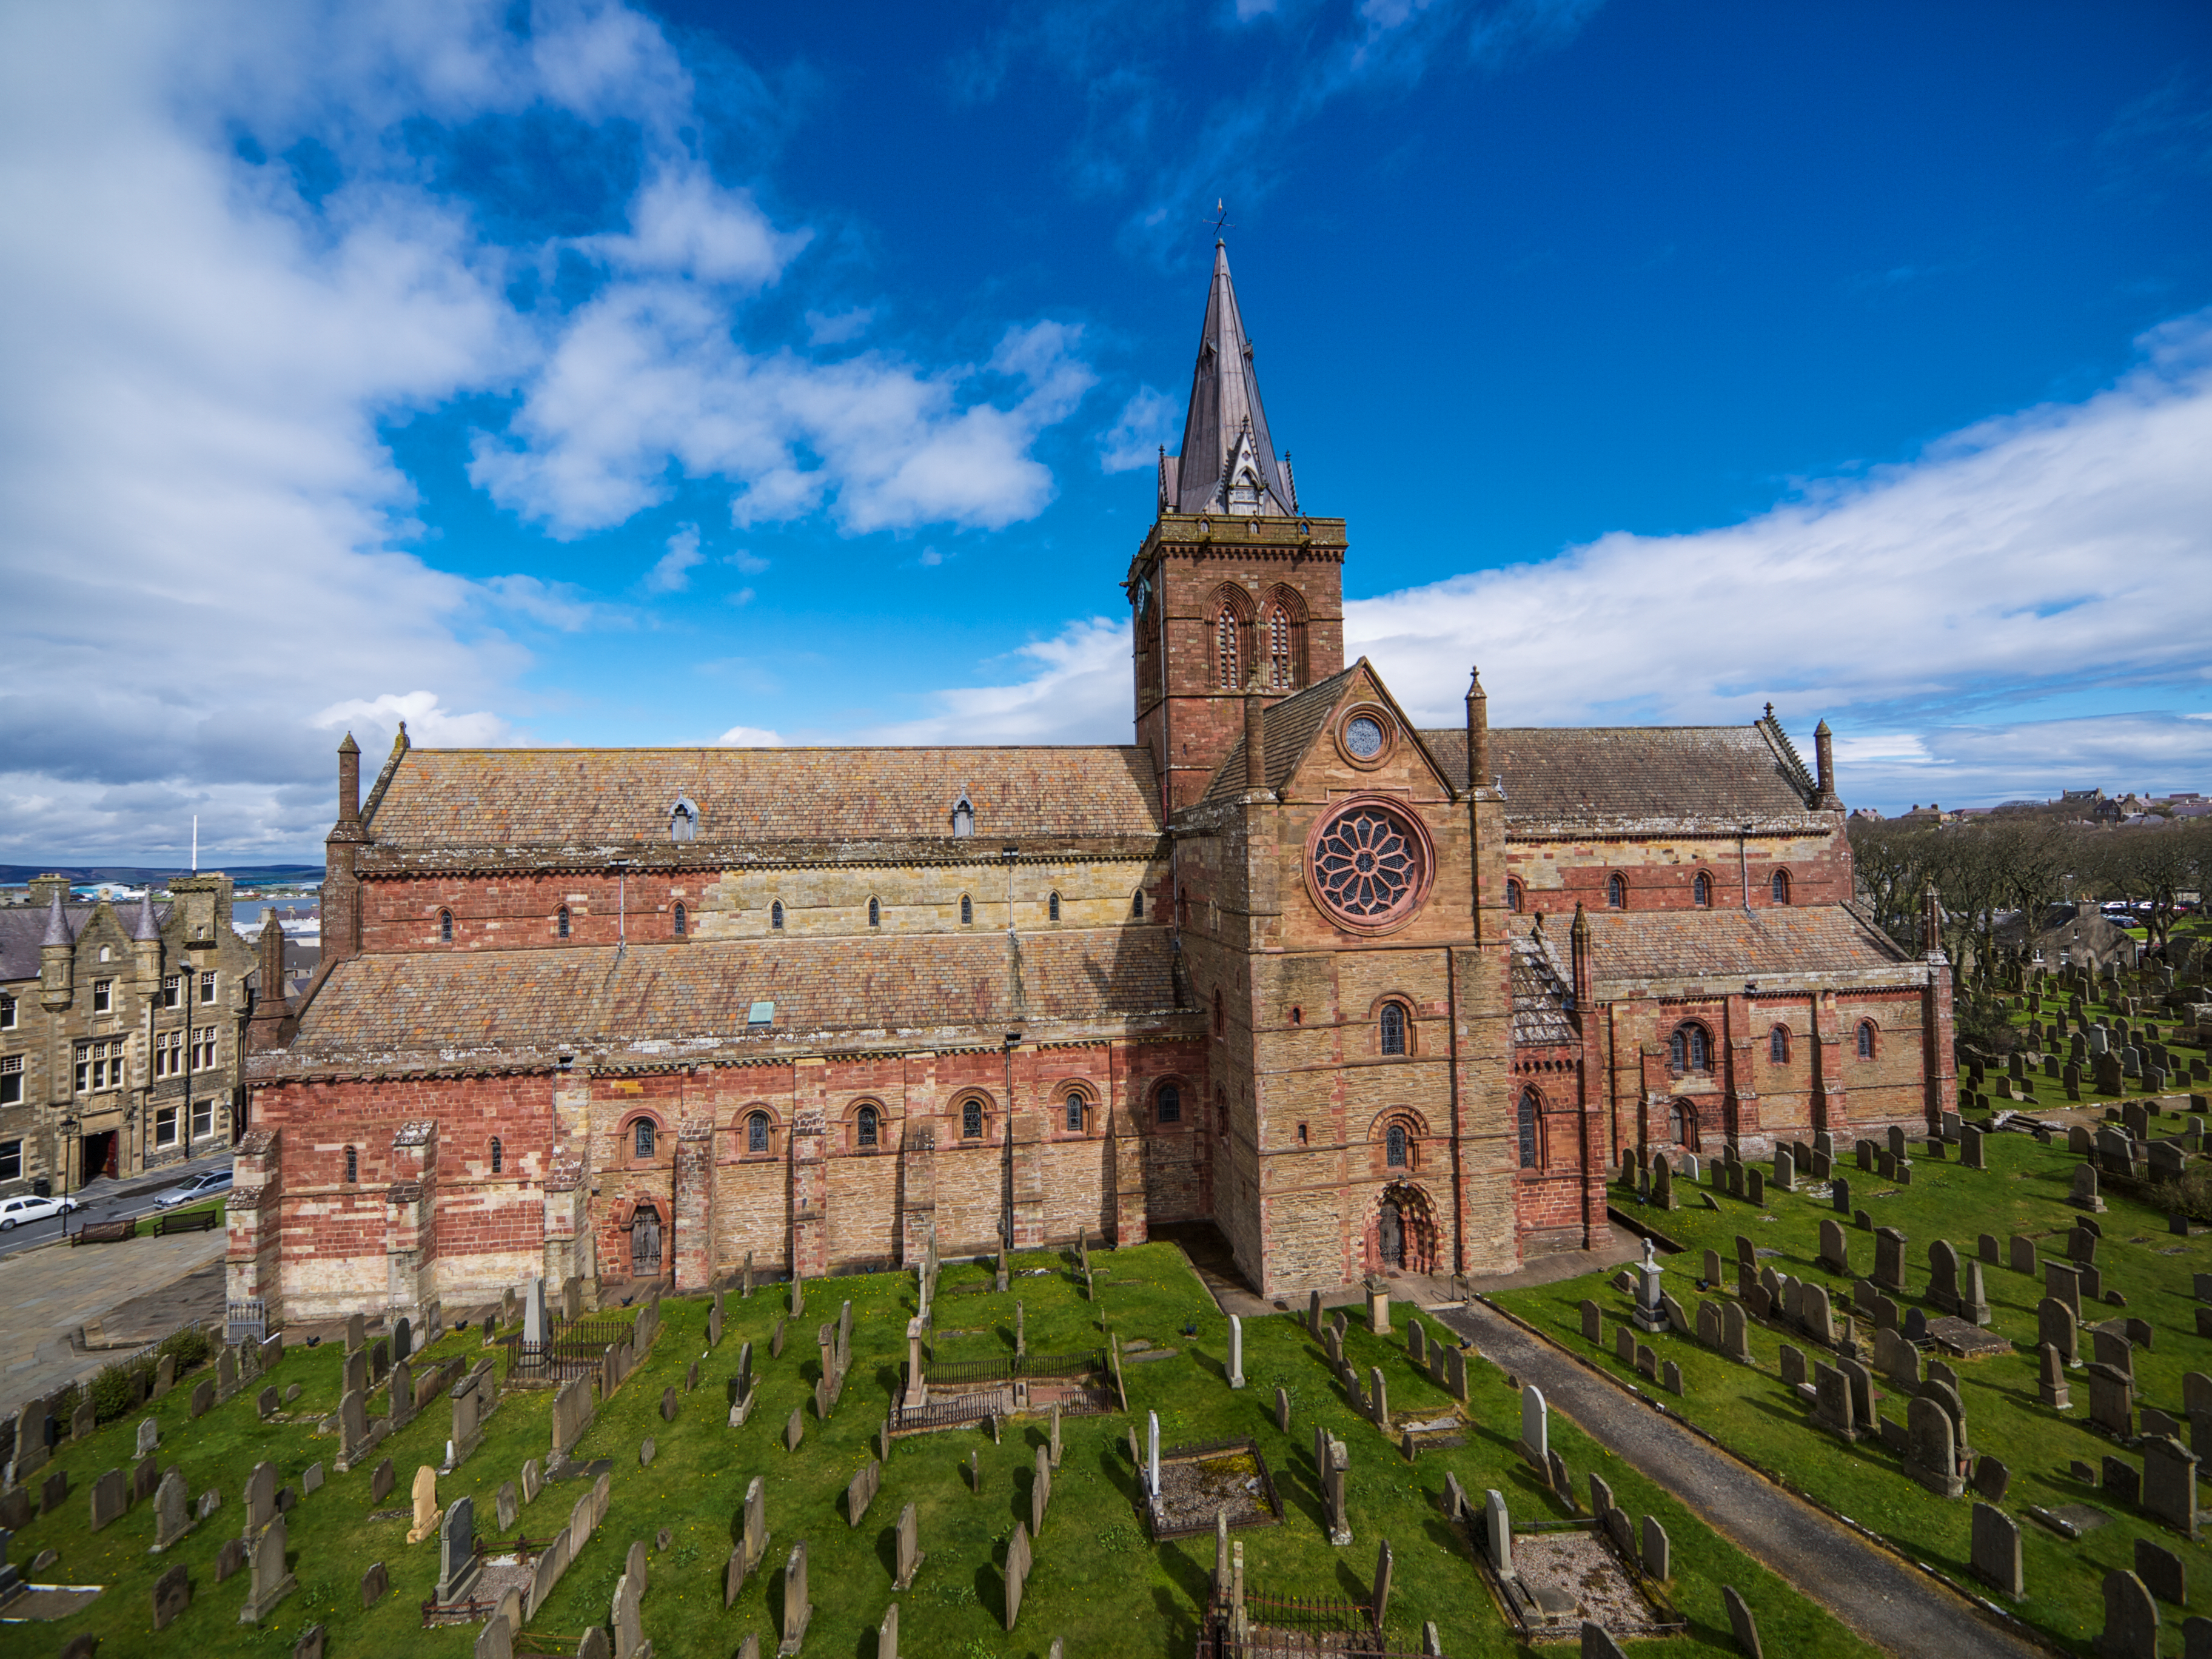 St Magnus Cathedral in Kirkwall, Orkney.